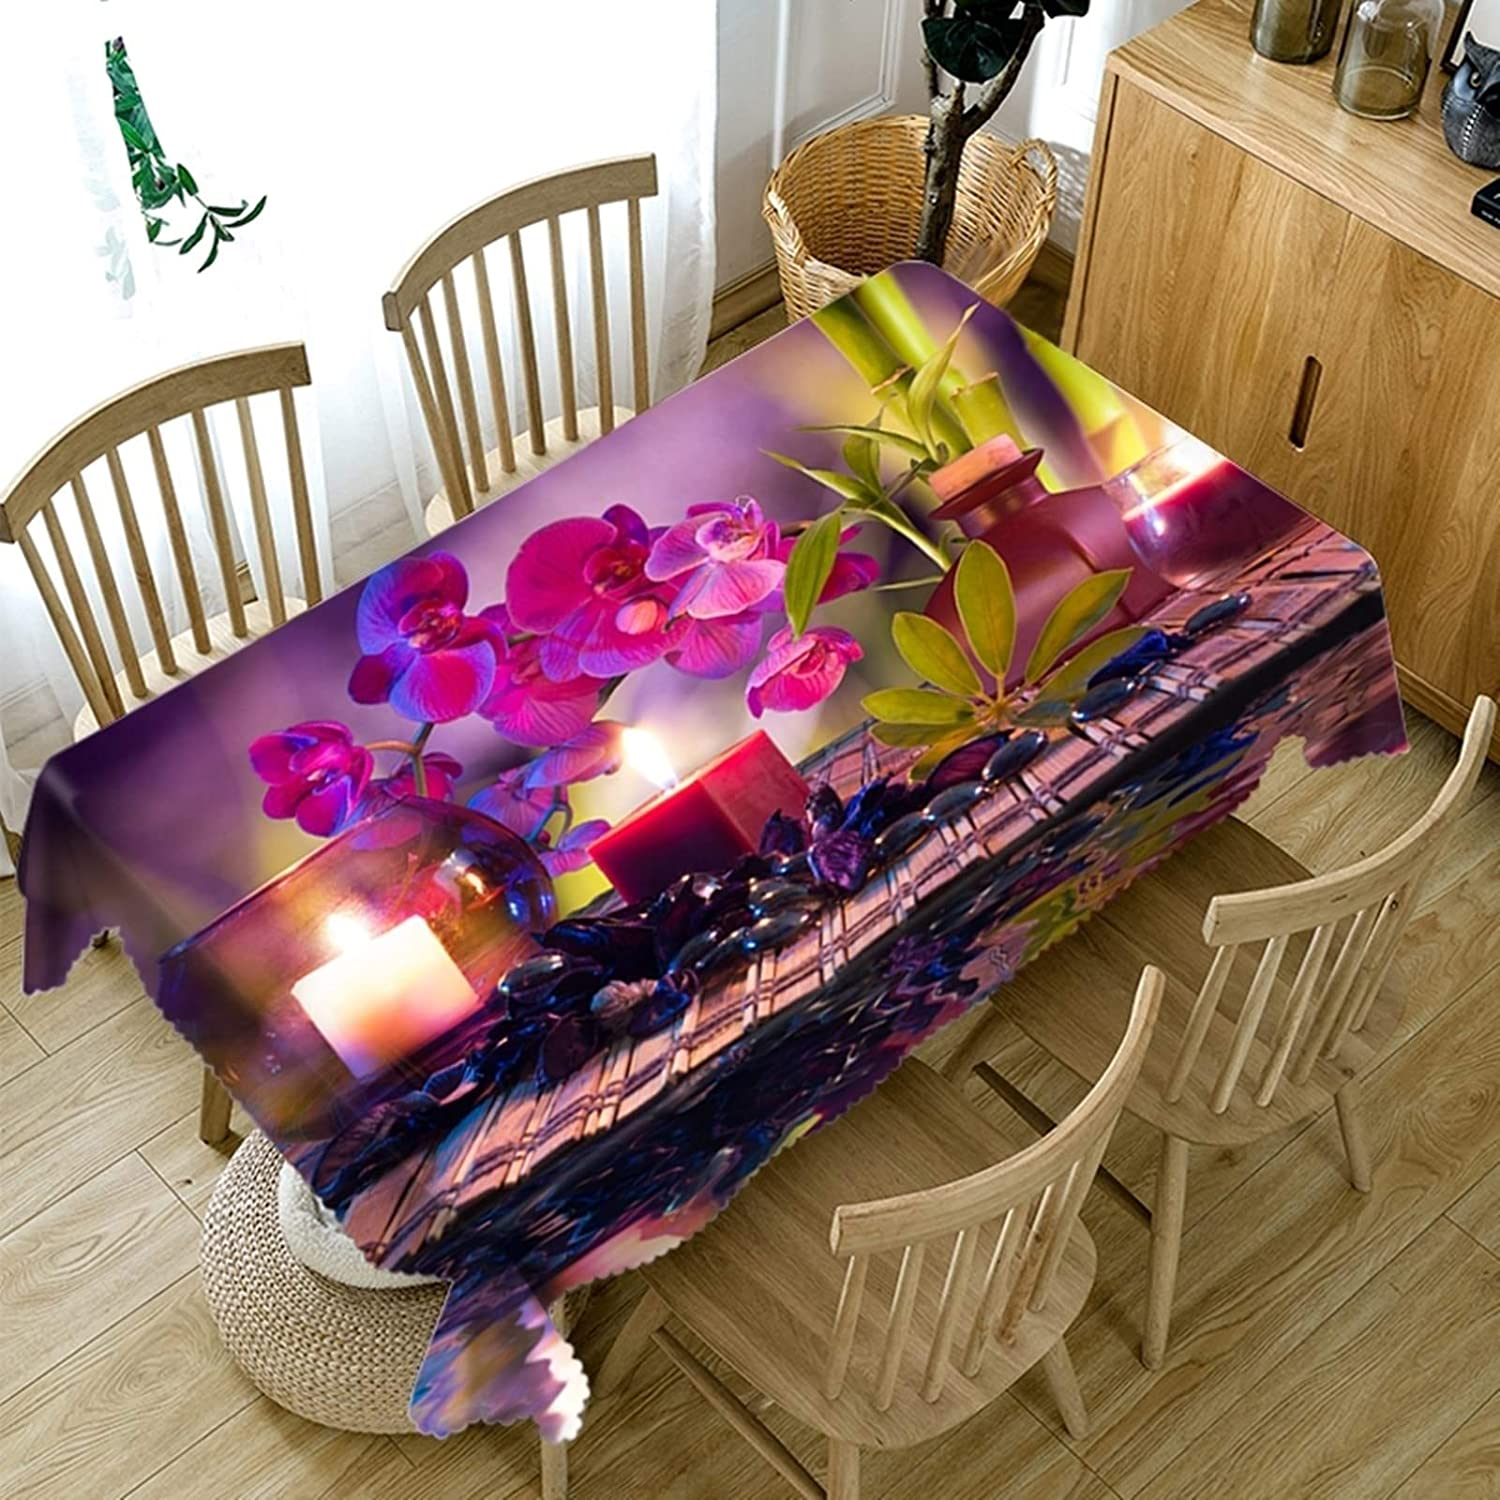 Agoble Direct sale of manufacturer Dinner Table Cover Colorful Bam Outlet ☆ Free Shipping Plum Blossom Aromatherapy